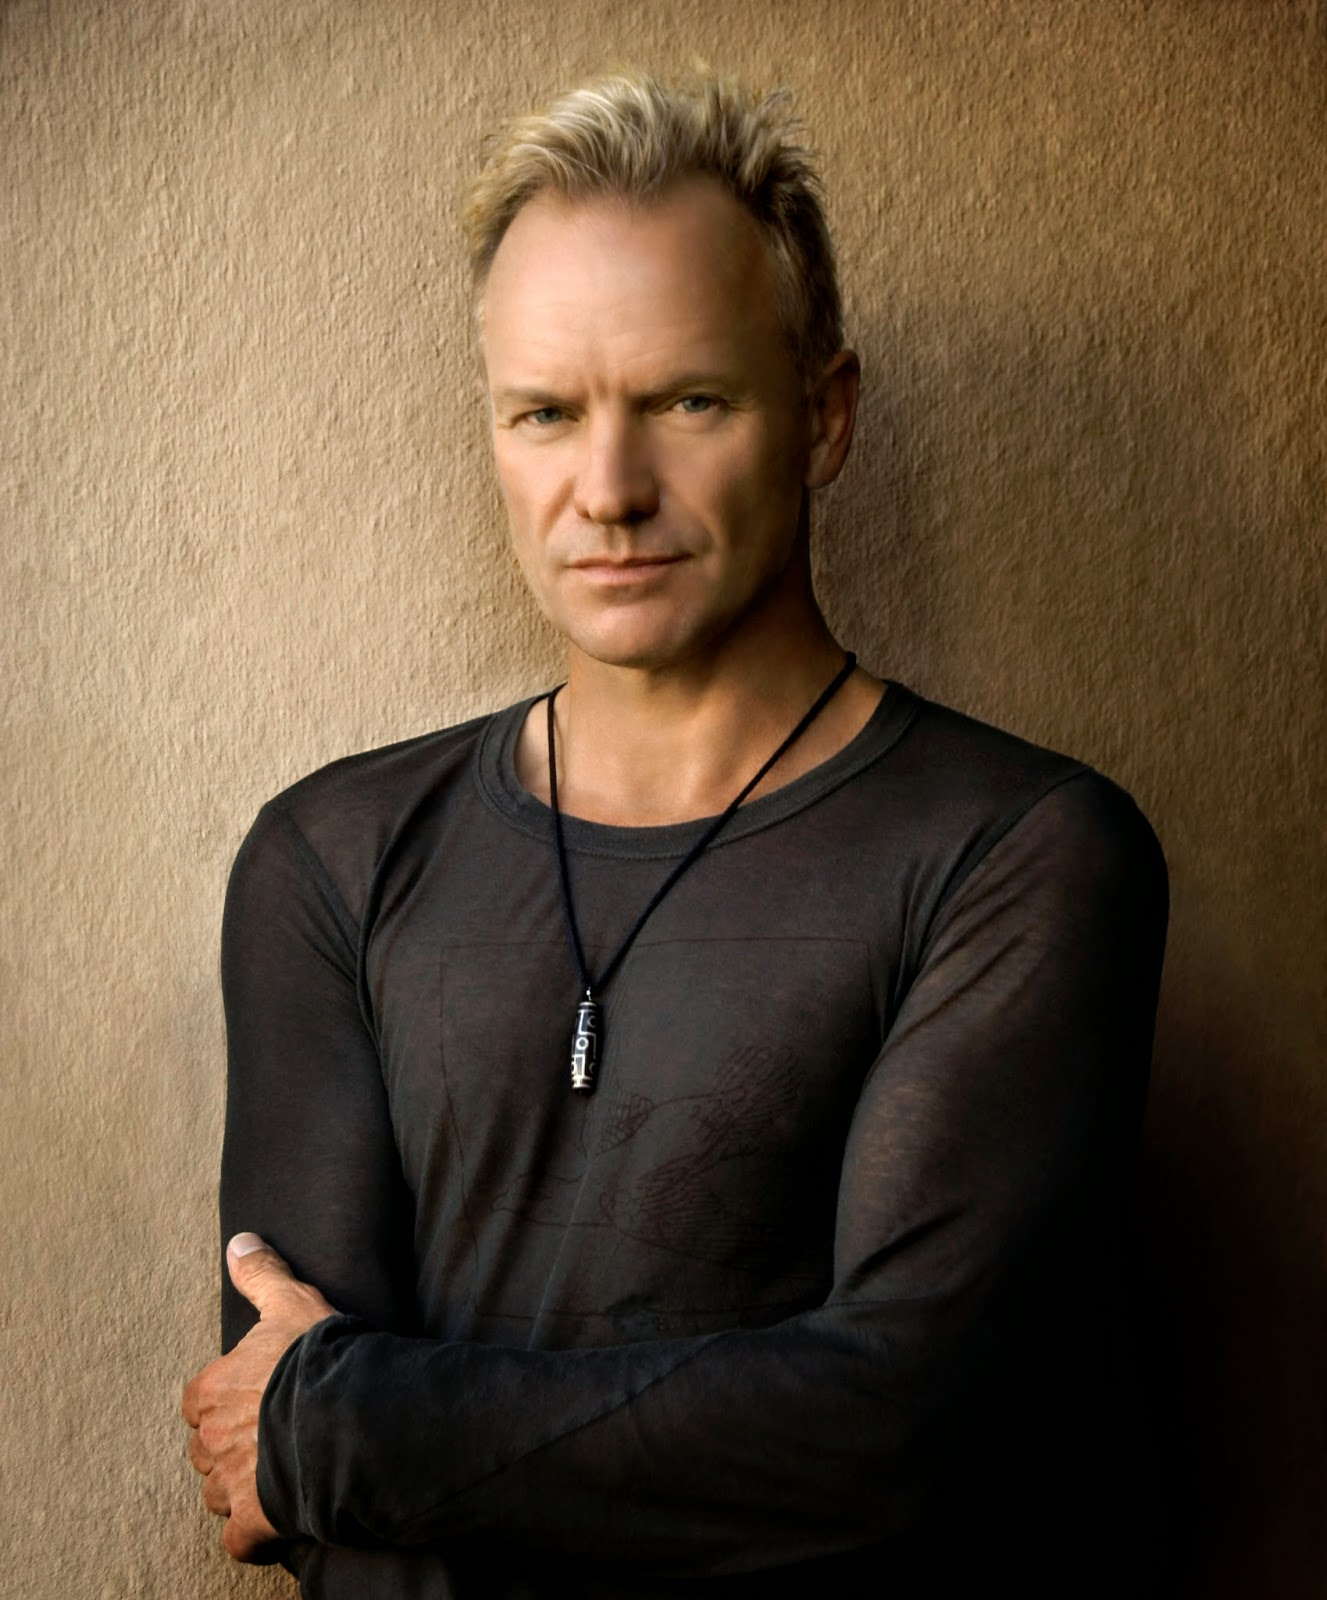 STING SELLS HIS CHILDREN INTO SLAVERY